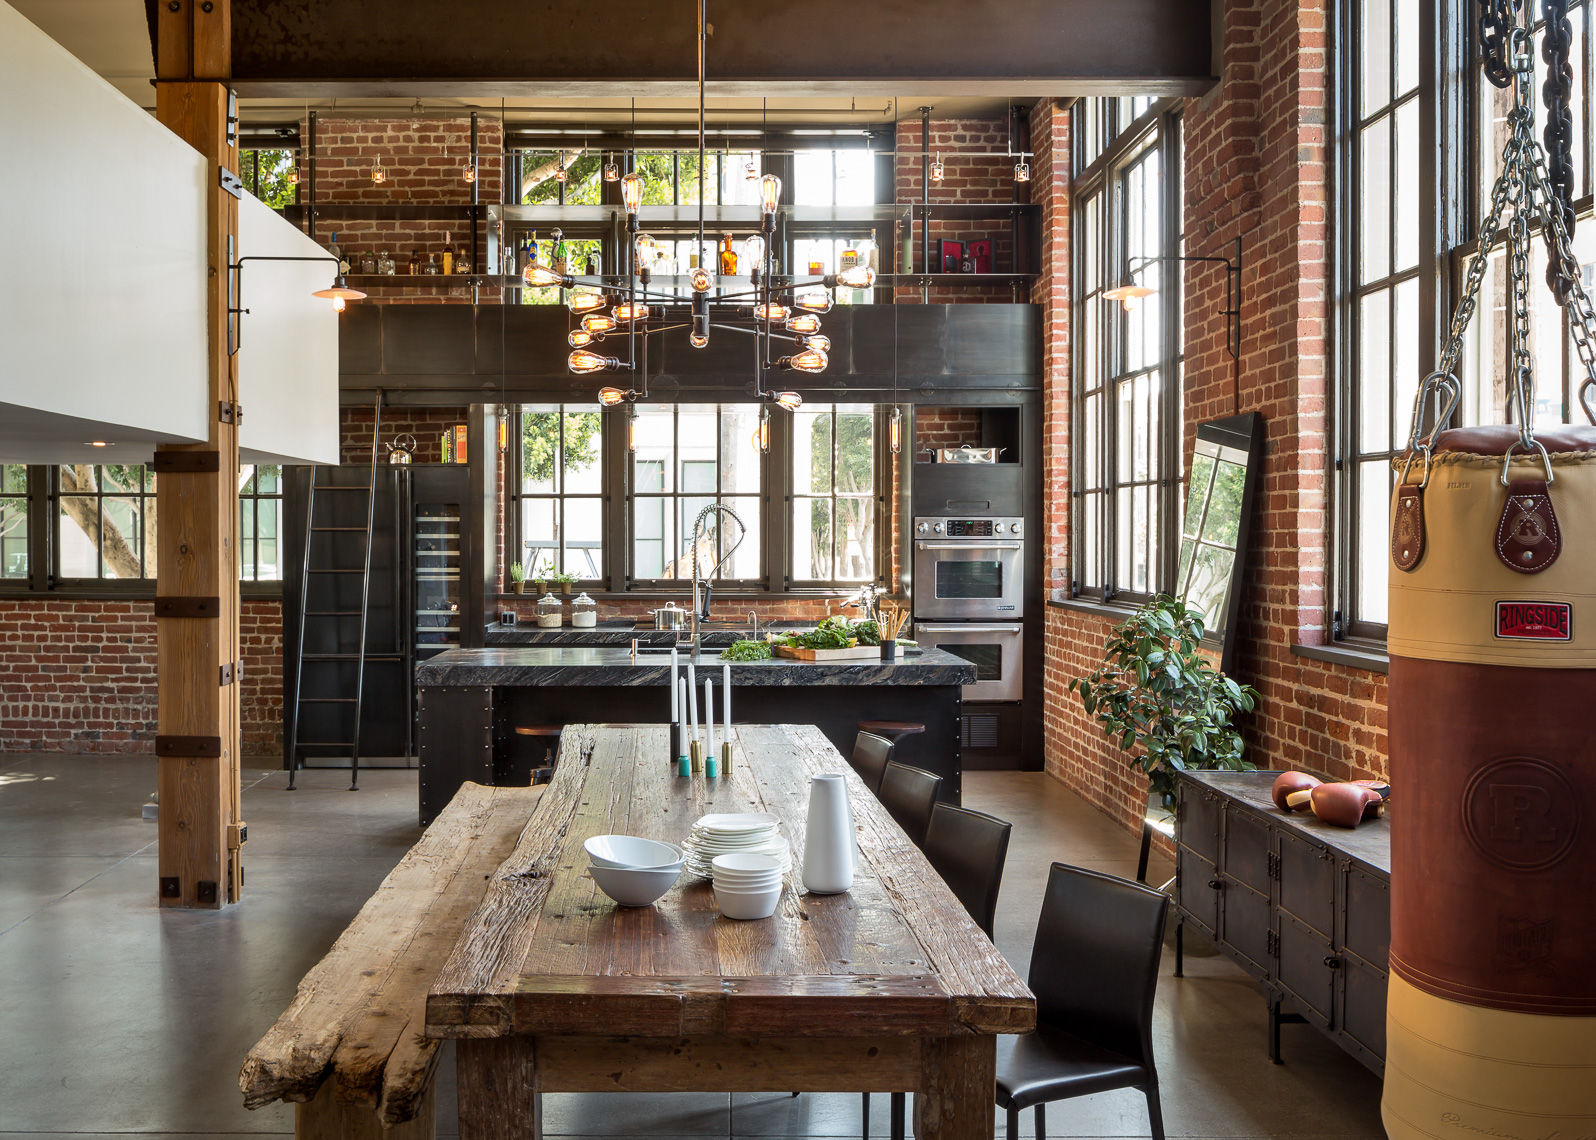 Architectural & Interiors Photographer - Clock Tower Lofts